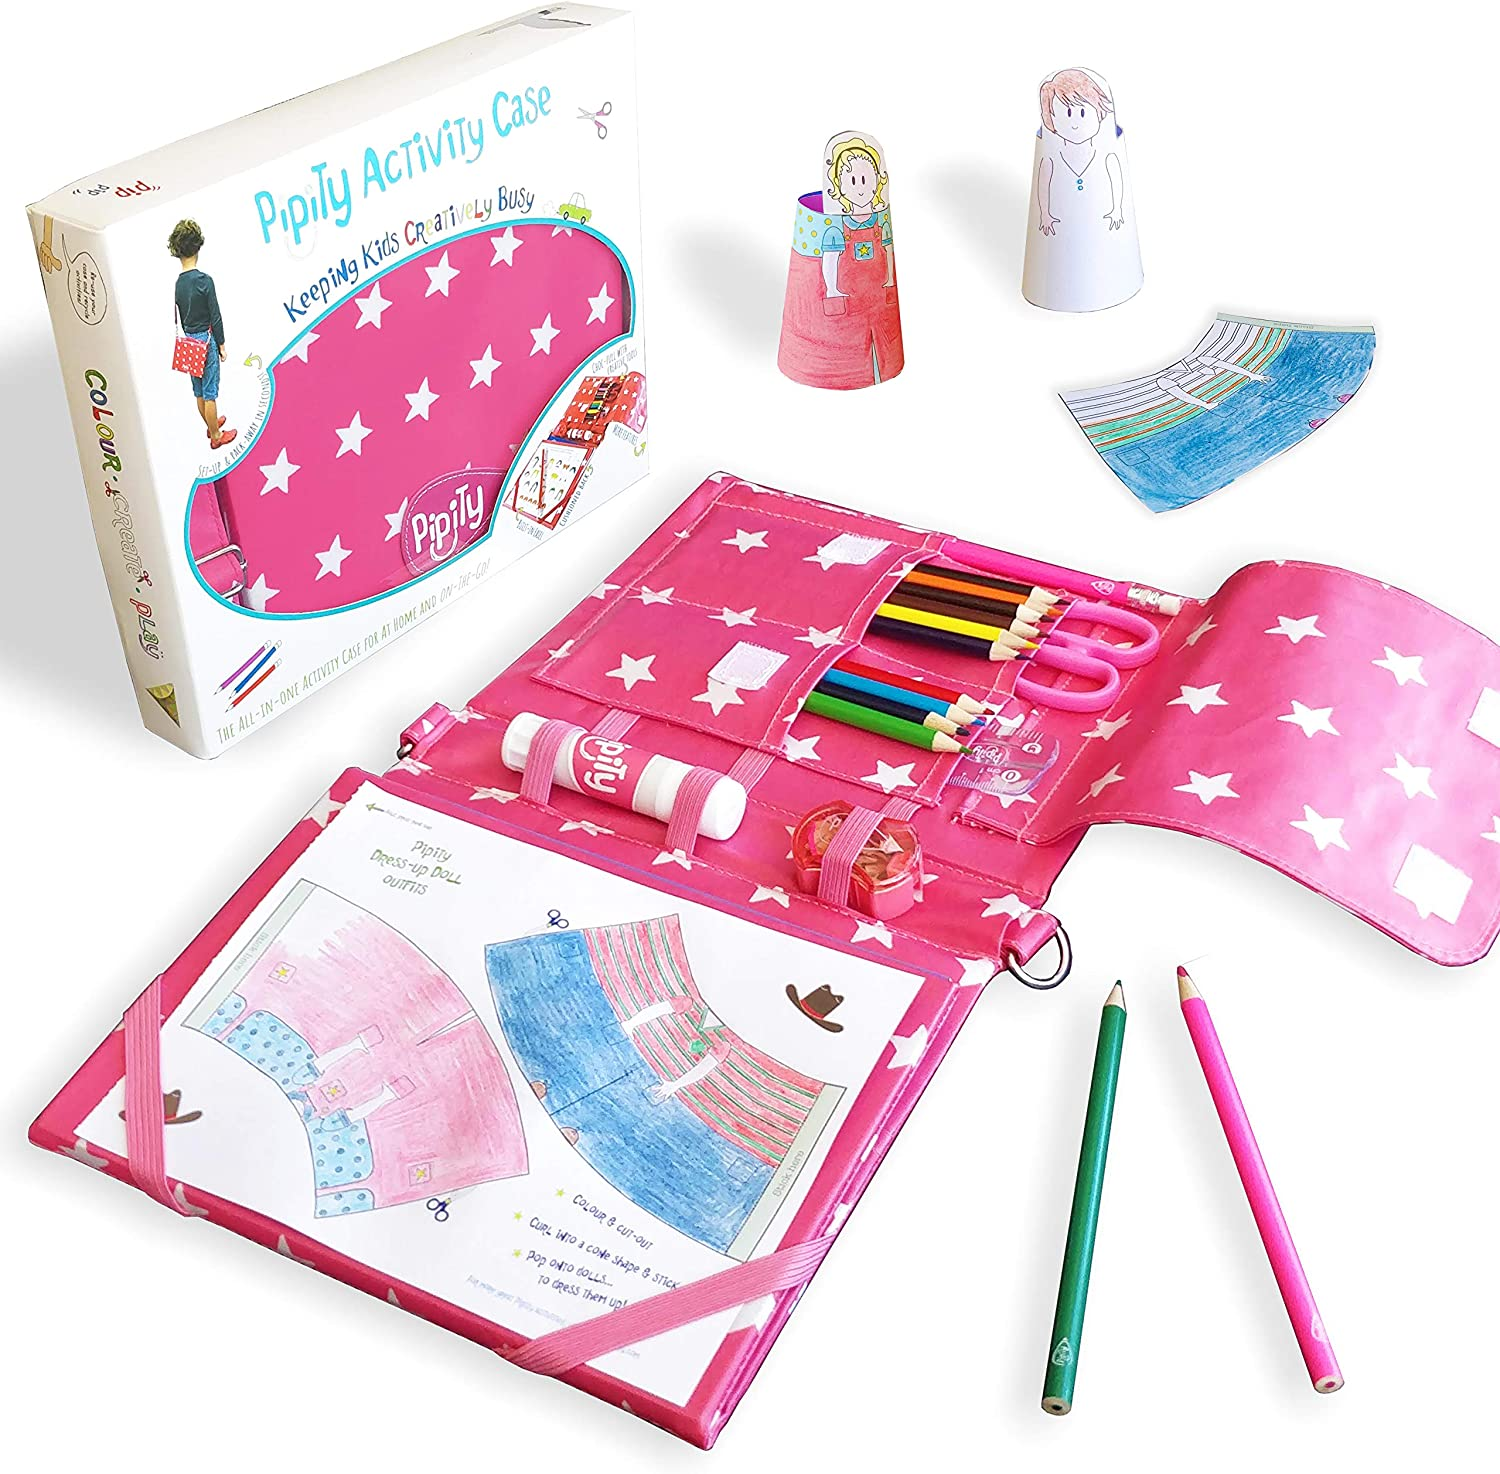 Pipity Art Set for Girls | Pink Arts and Crafts Set with Stationary and Activity Book Included | Papercraft, Art, Travel Games, Puzzles | Great Gift for a Girl Age 6,7,8,9,10 Years Old | Carry Case